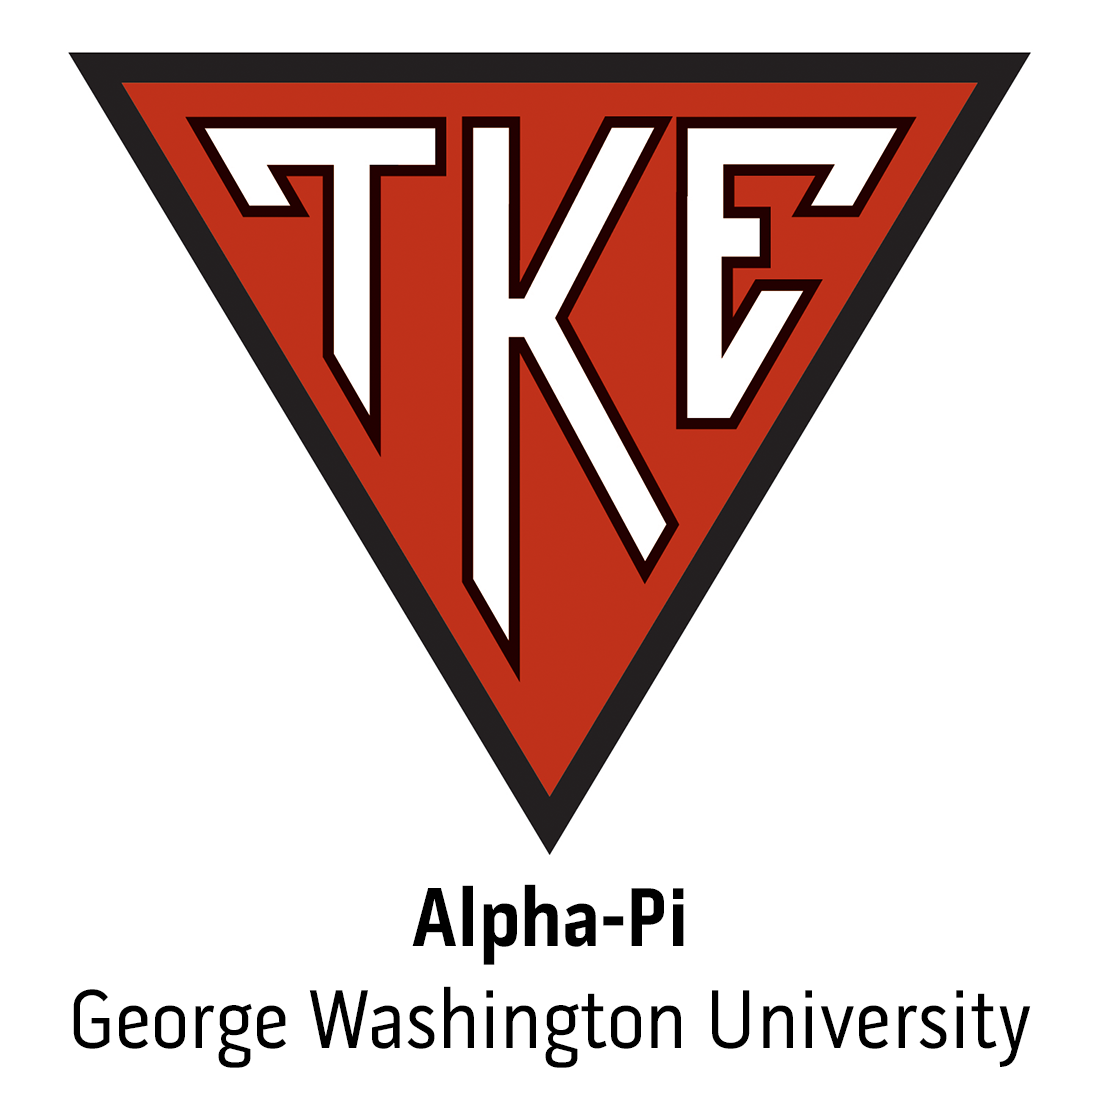 Alpha-Pi Colony at George Washington University